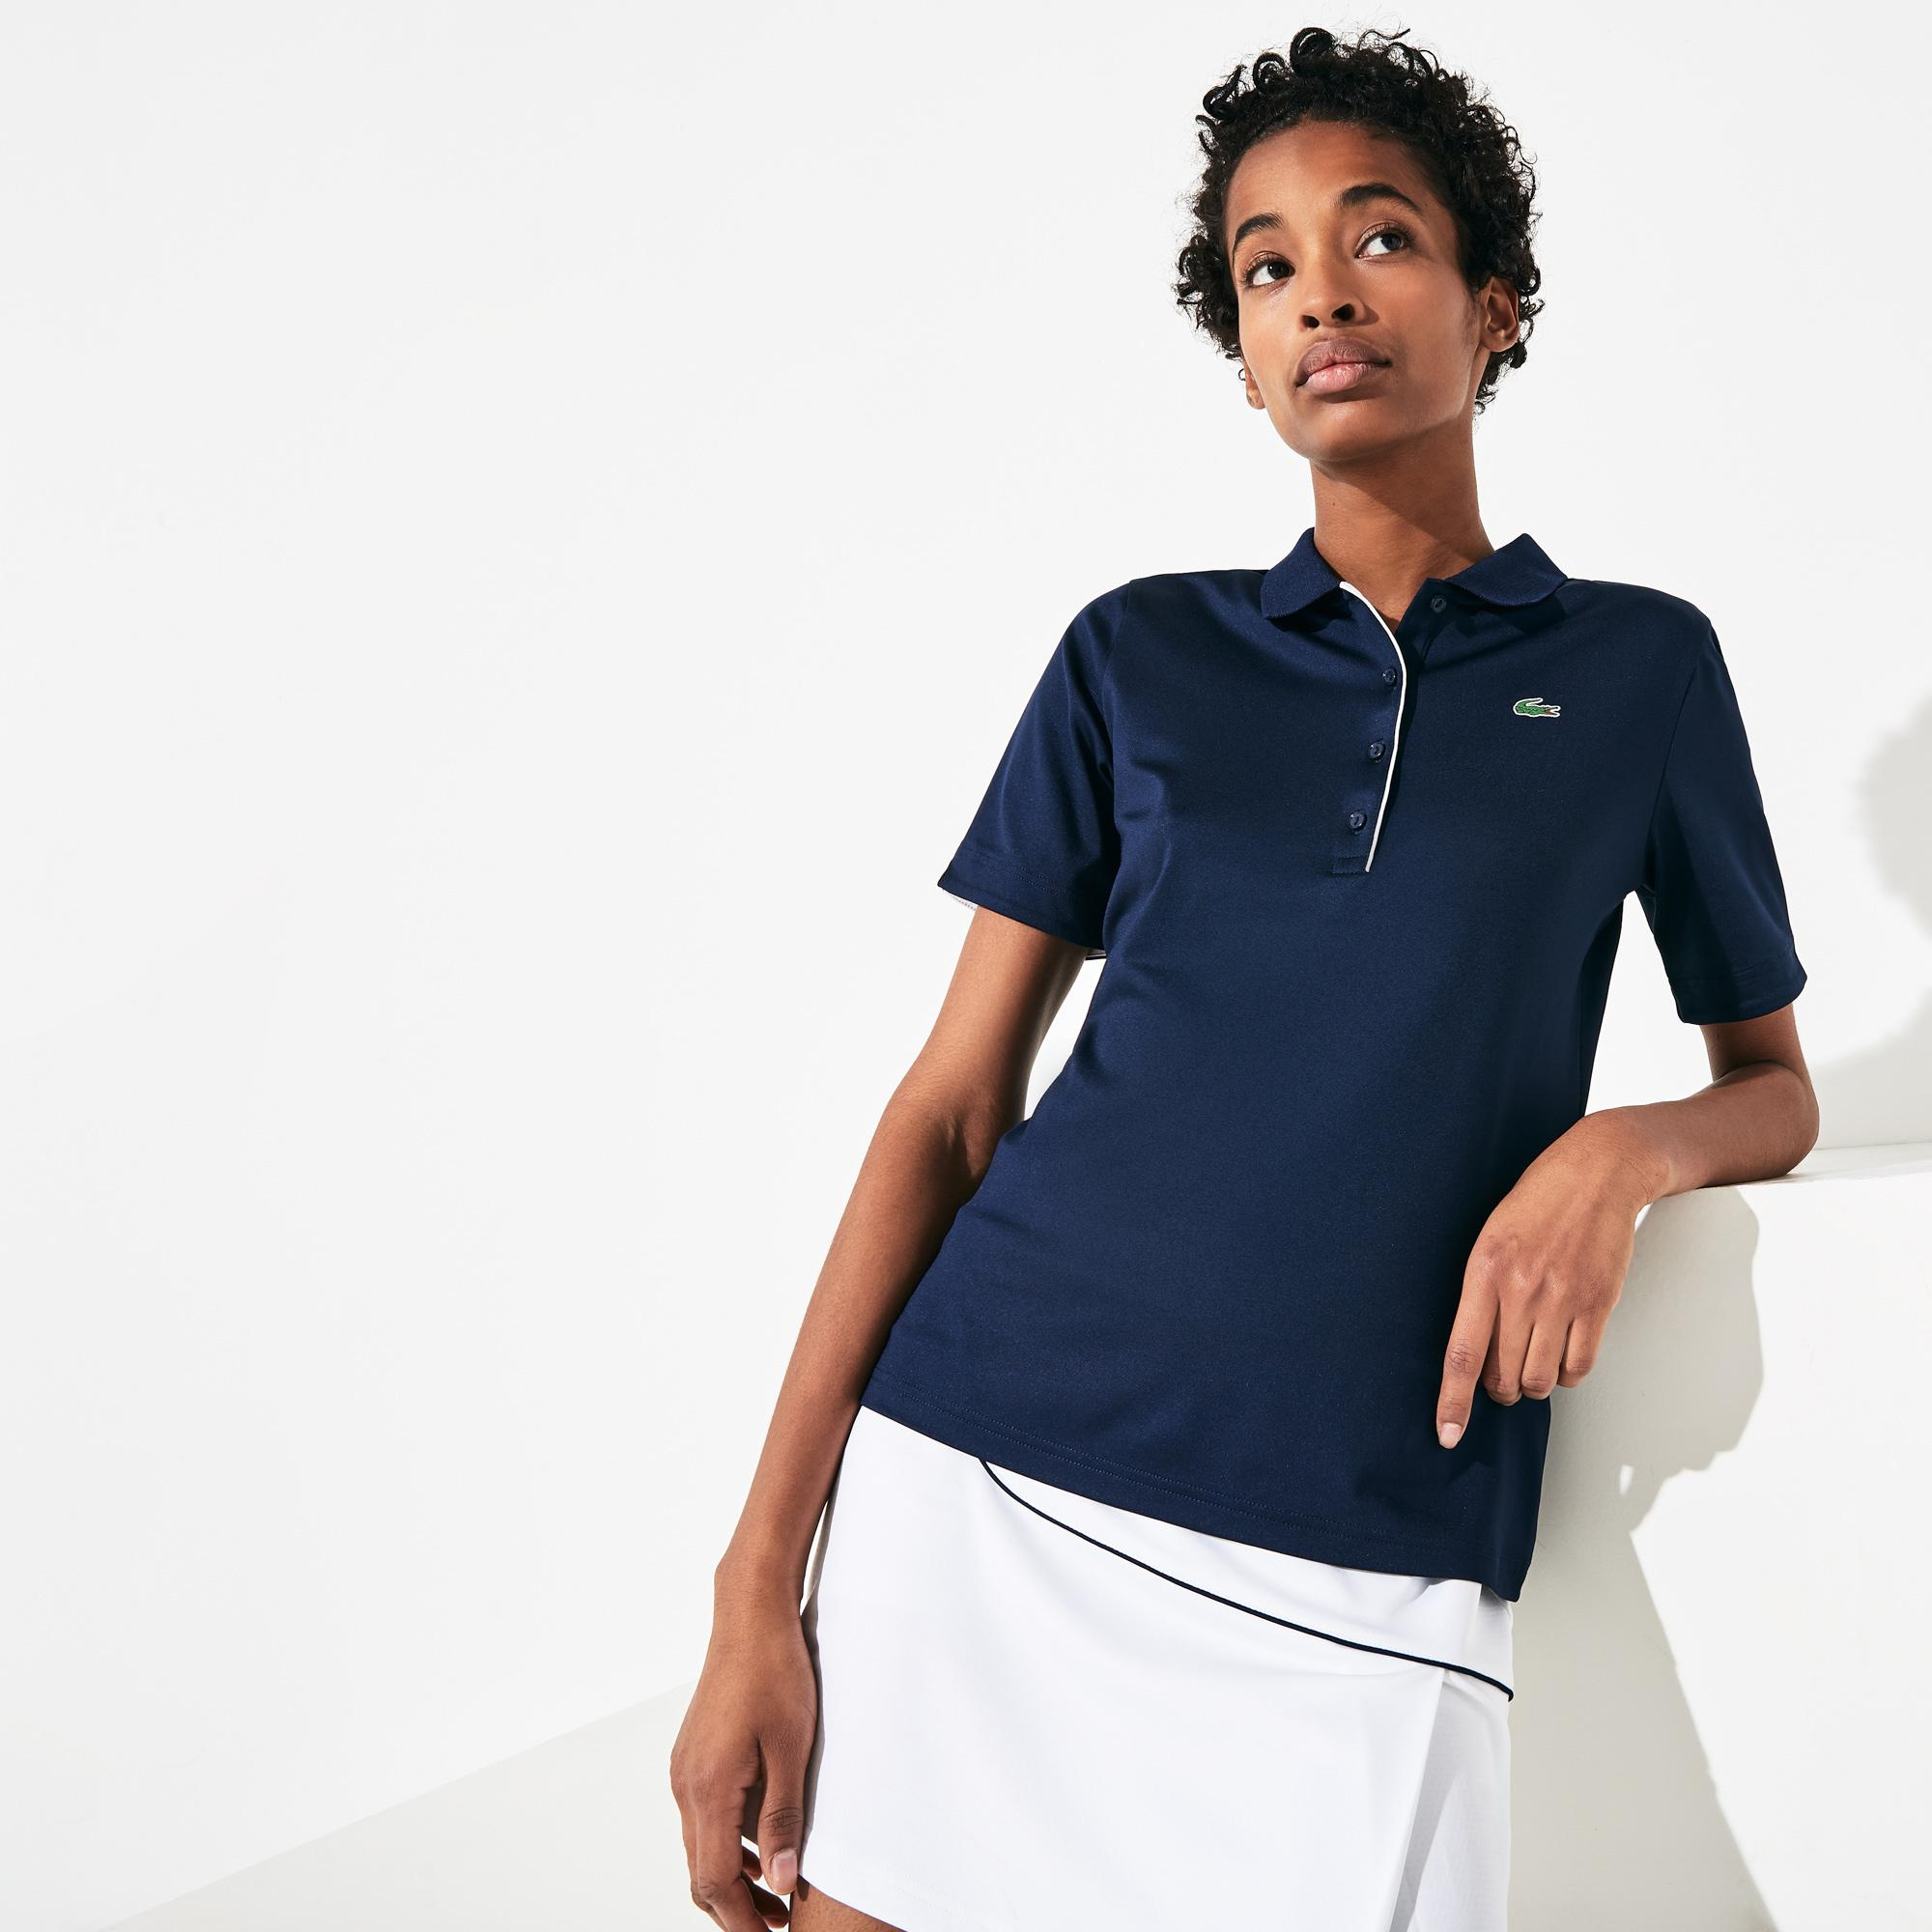 Lacoste Women's Sport Breathable Stretch Golf Polo Shirt